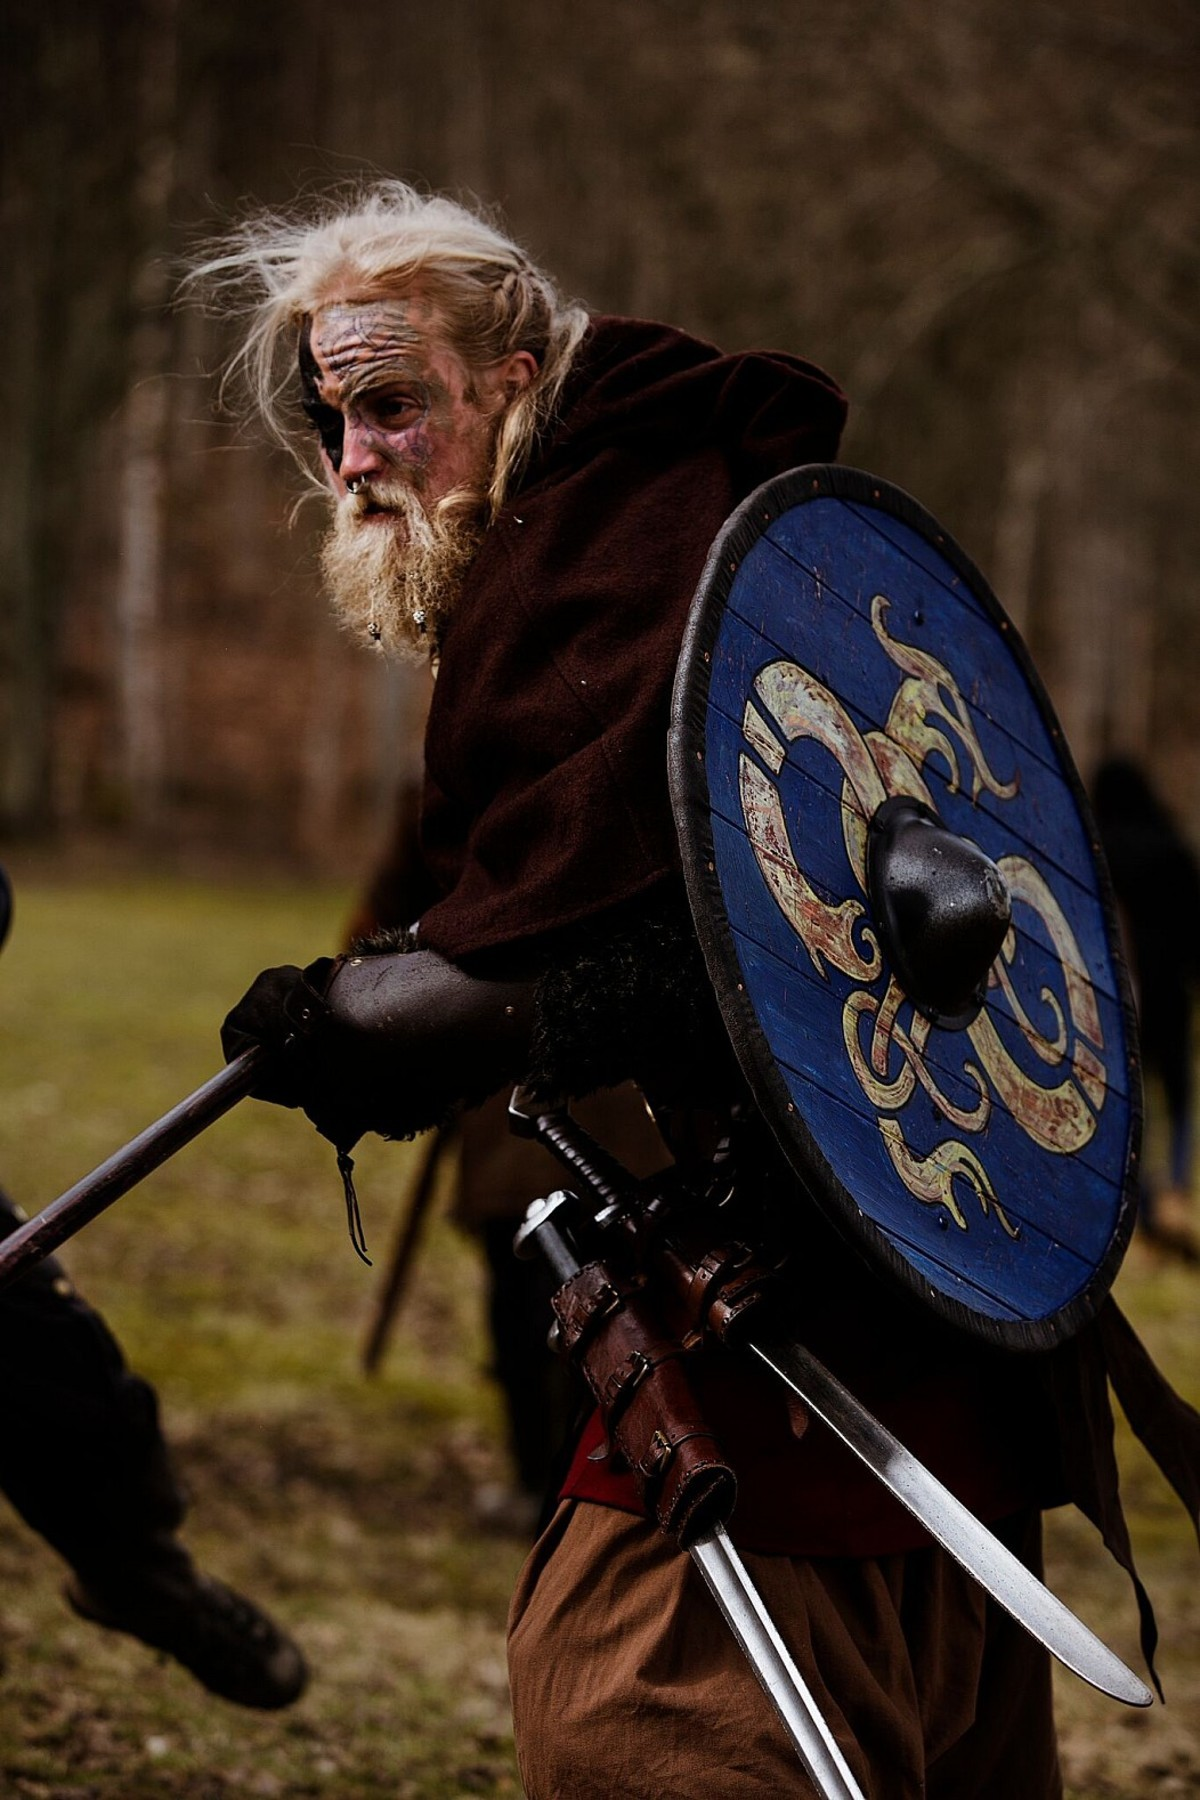 norse. join list: StabbingTime (527 subs)Mention History.. Swords hanging with blades exposed, one-way ticket to slash-my-own-leg-to-pieces-ville